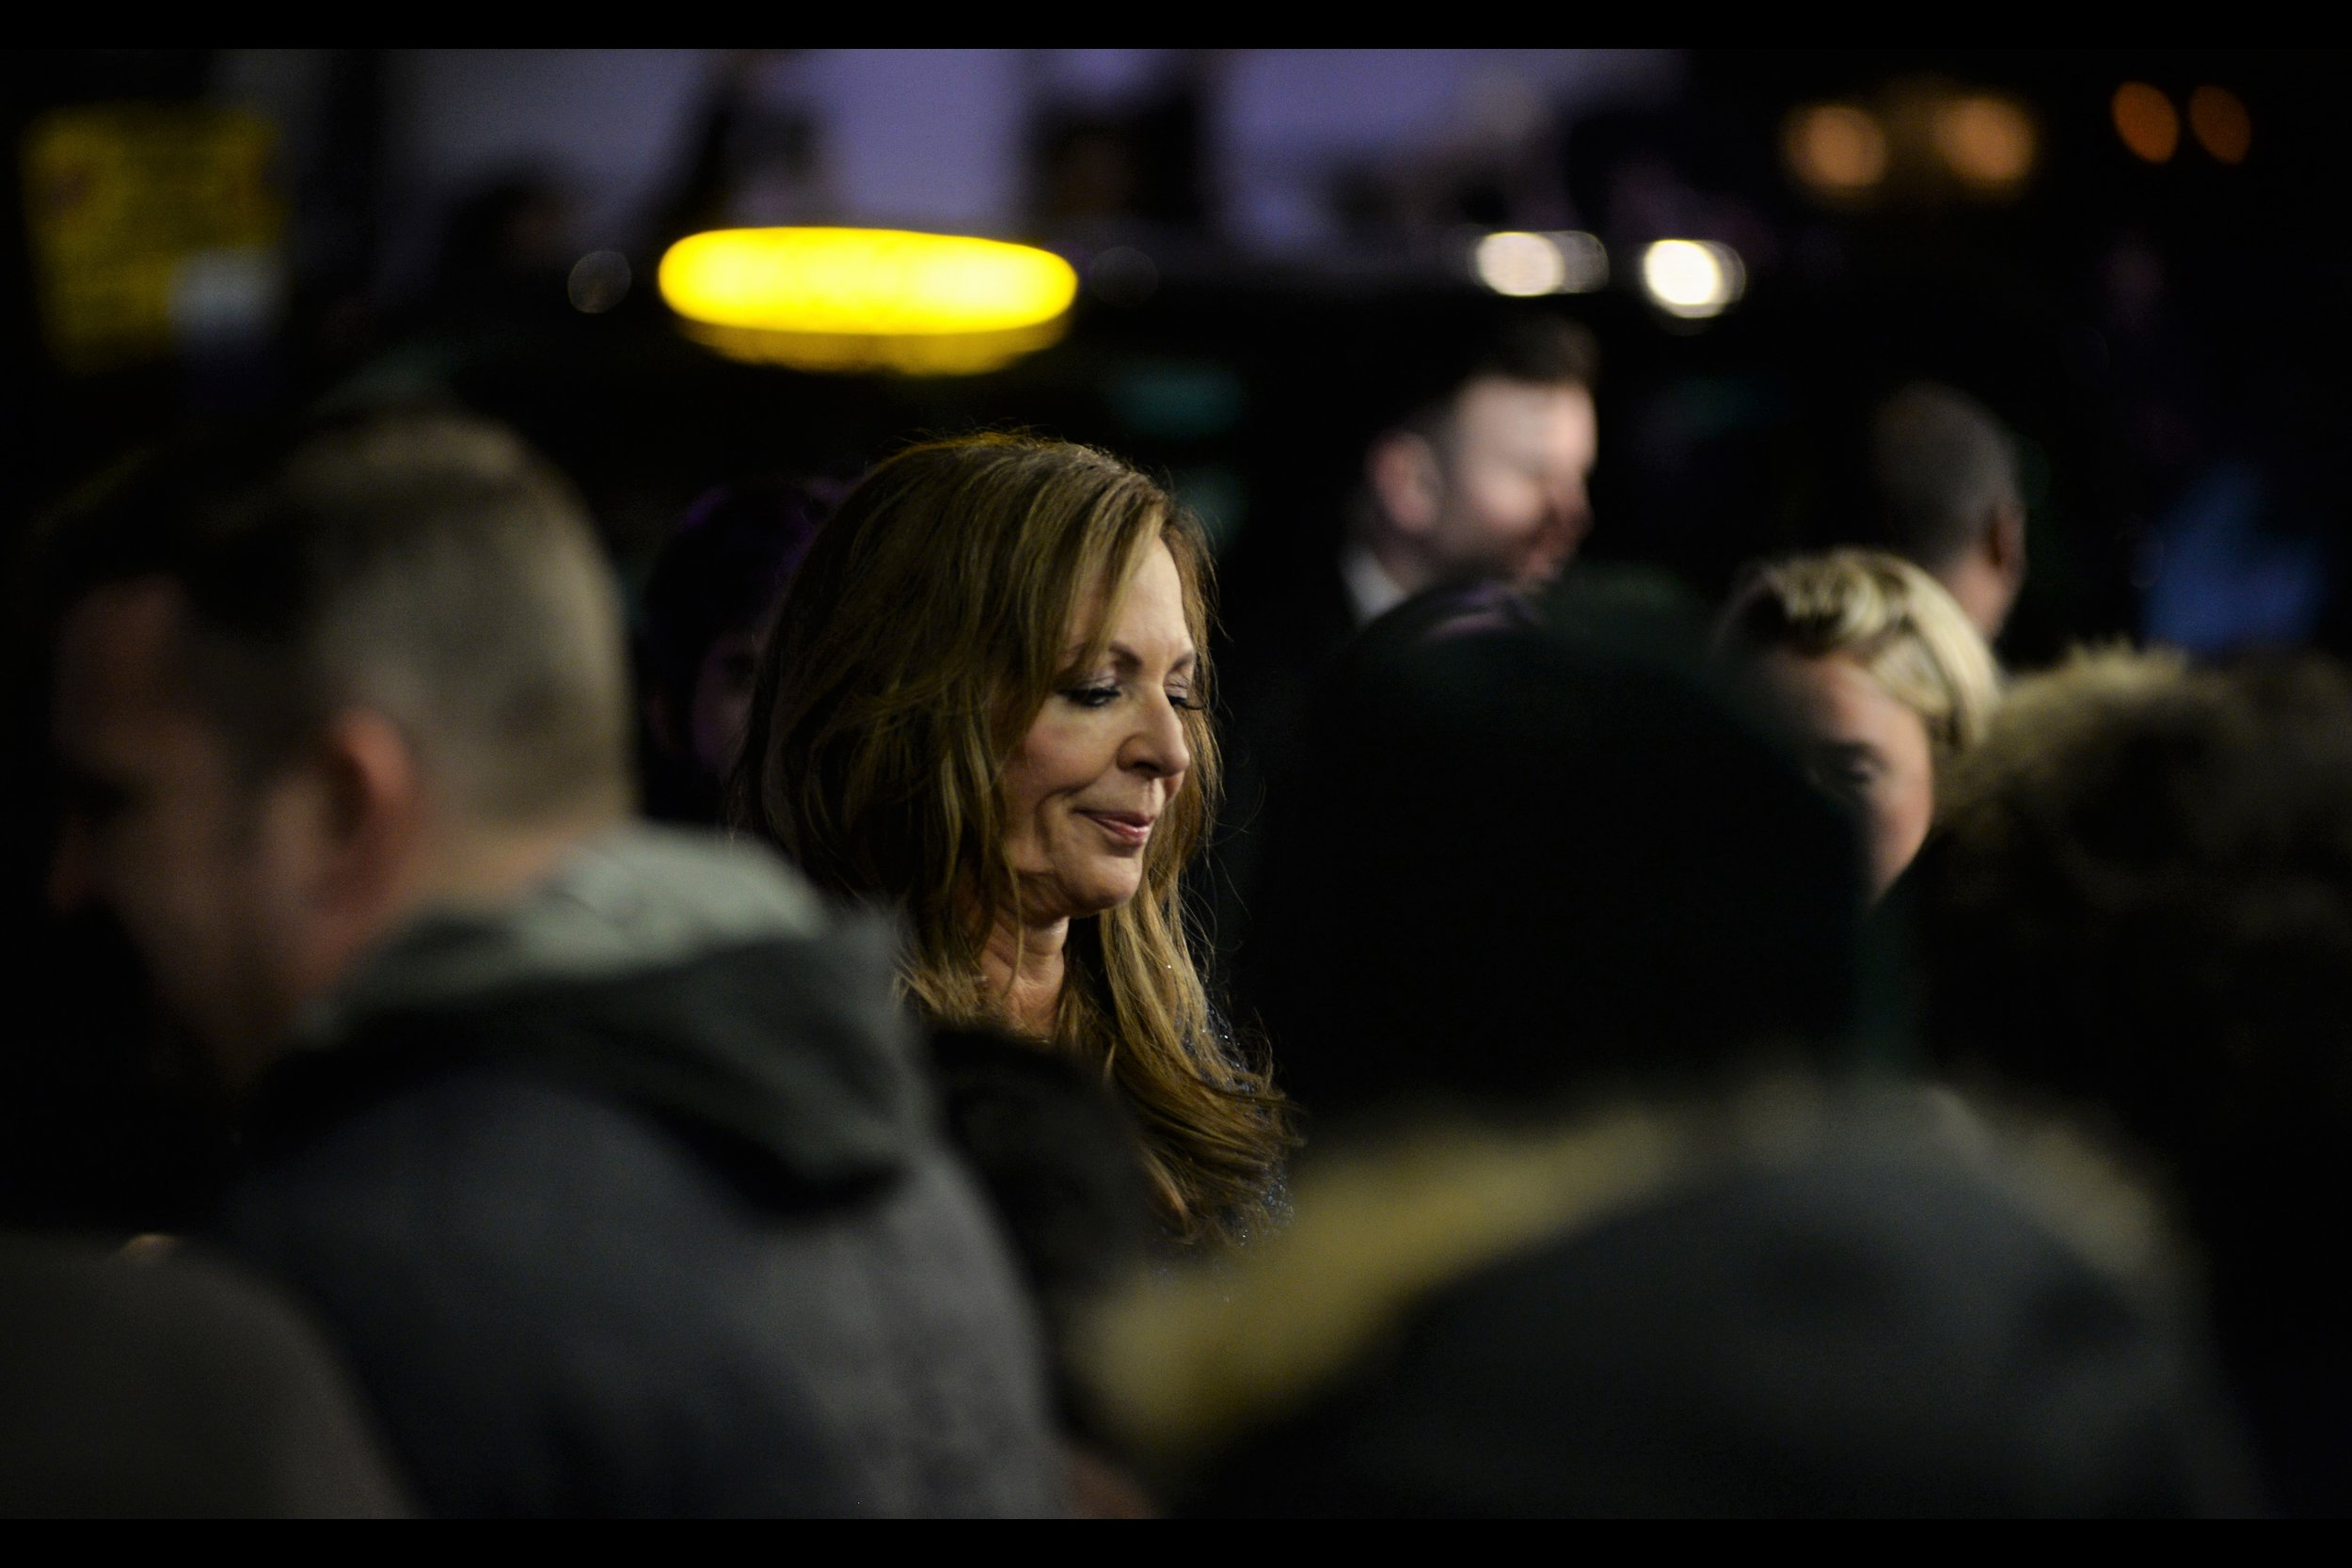 """""""Slightly off-base background light resembling a halo? I'll allow it""""  - Allison Janney, like Margot Robbie, has received an Oscar nomination for being in this movie."""